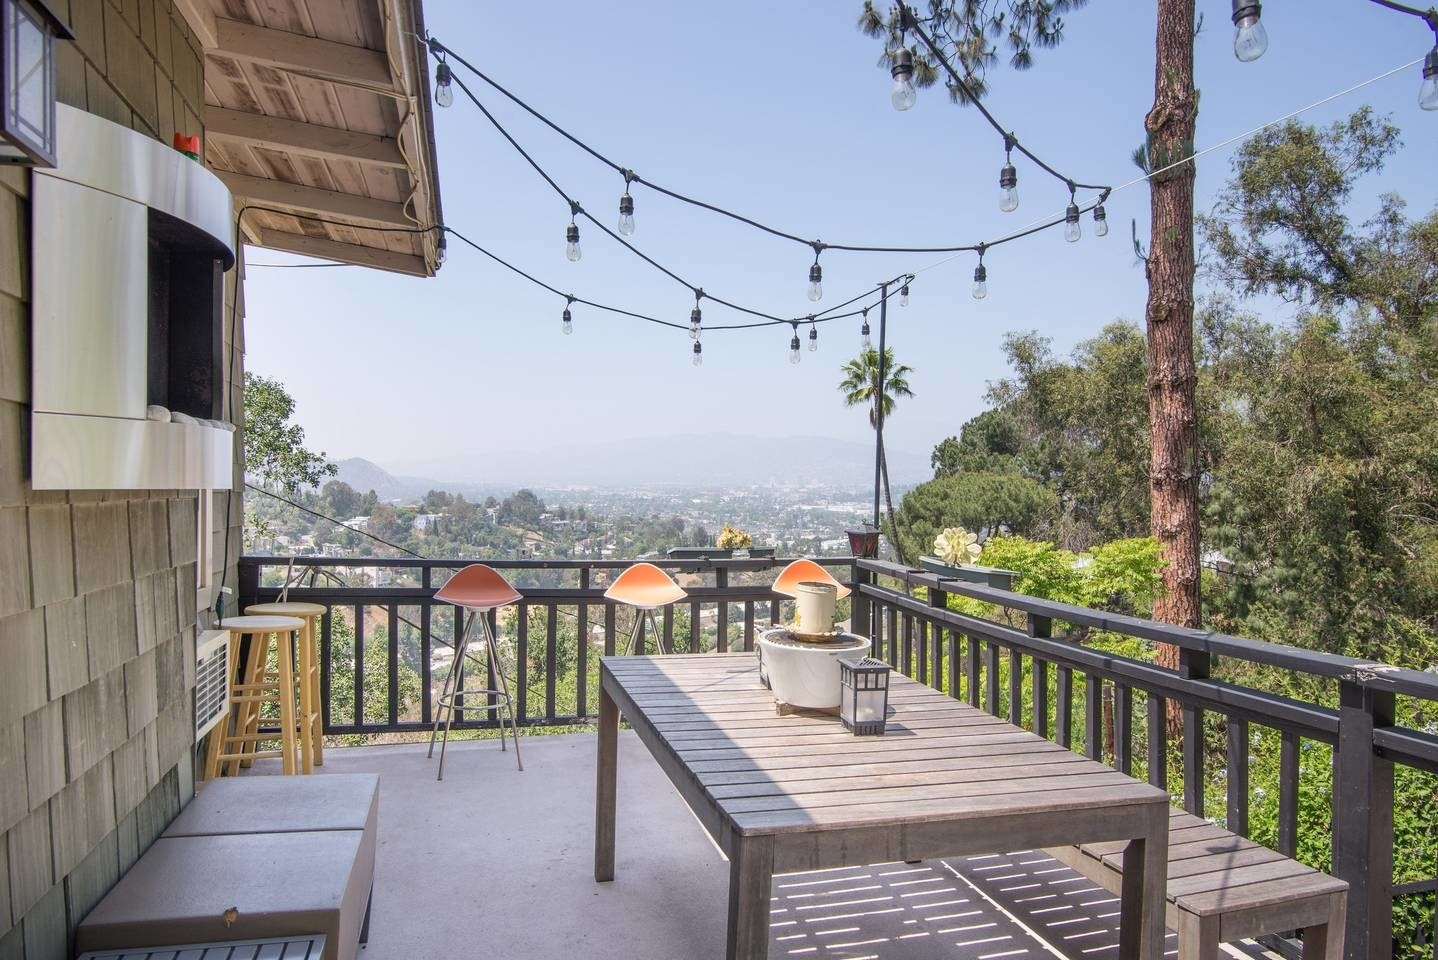 Set in L.A's hipster Echo Park neigborhood, this sun-drenched apartment is surrounded by trendy eateries, bustling bars, and colorful street art. See the listing here.